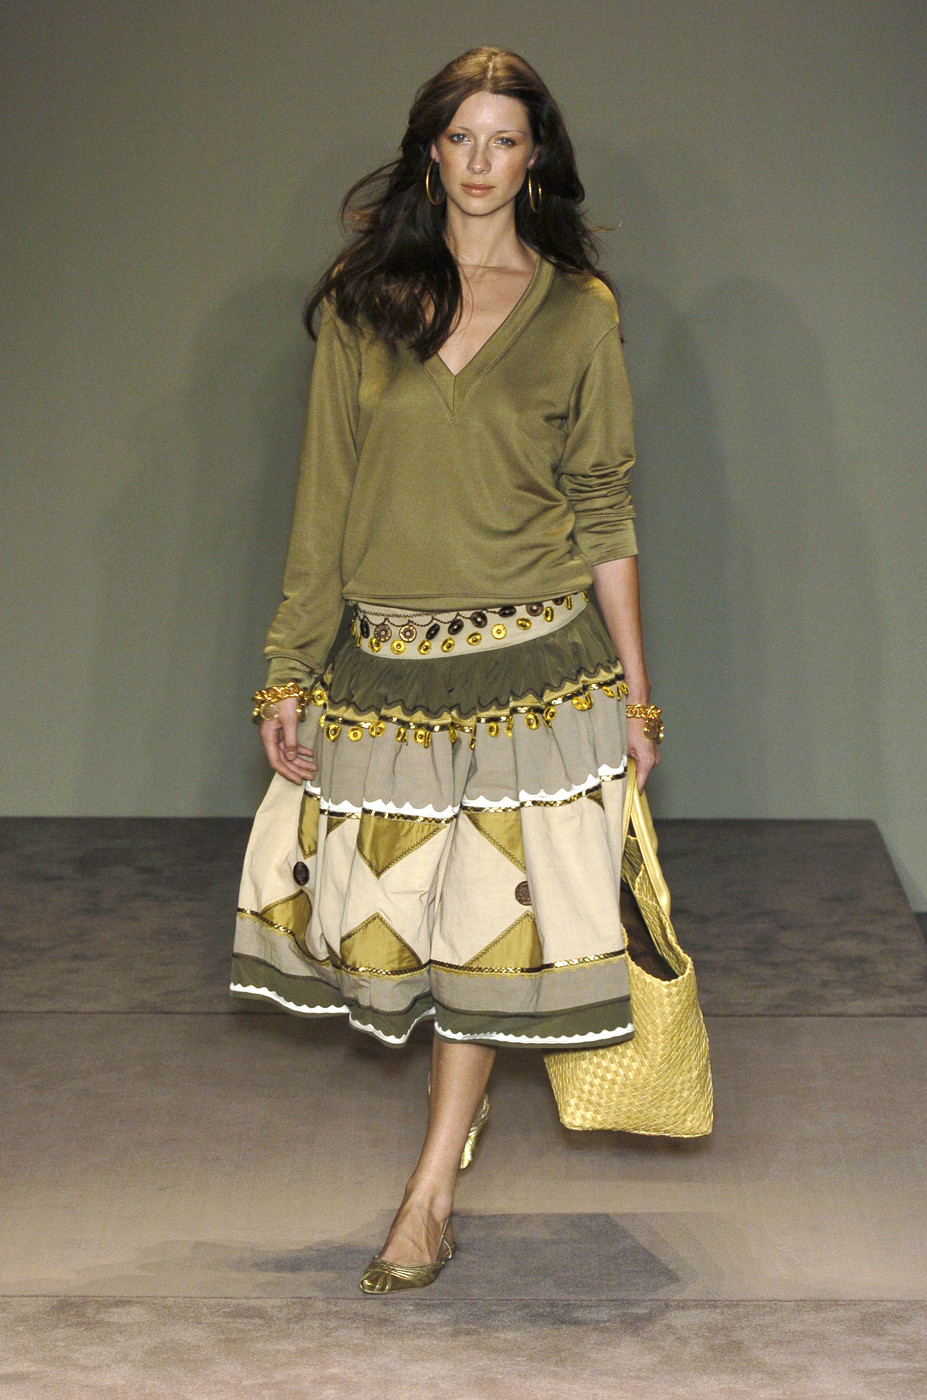 via fashioned by love | Bottega Veneta Spring/Summer 2005